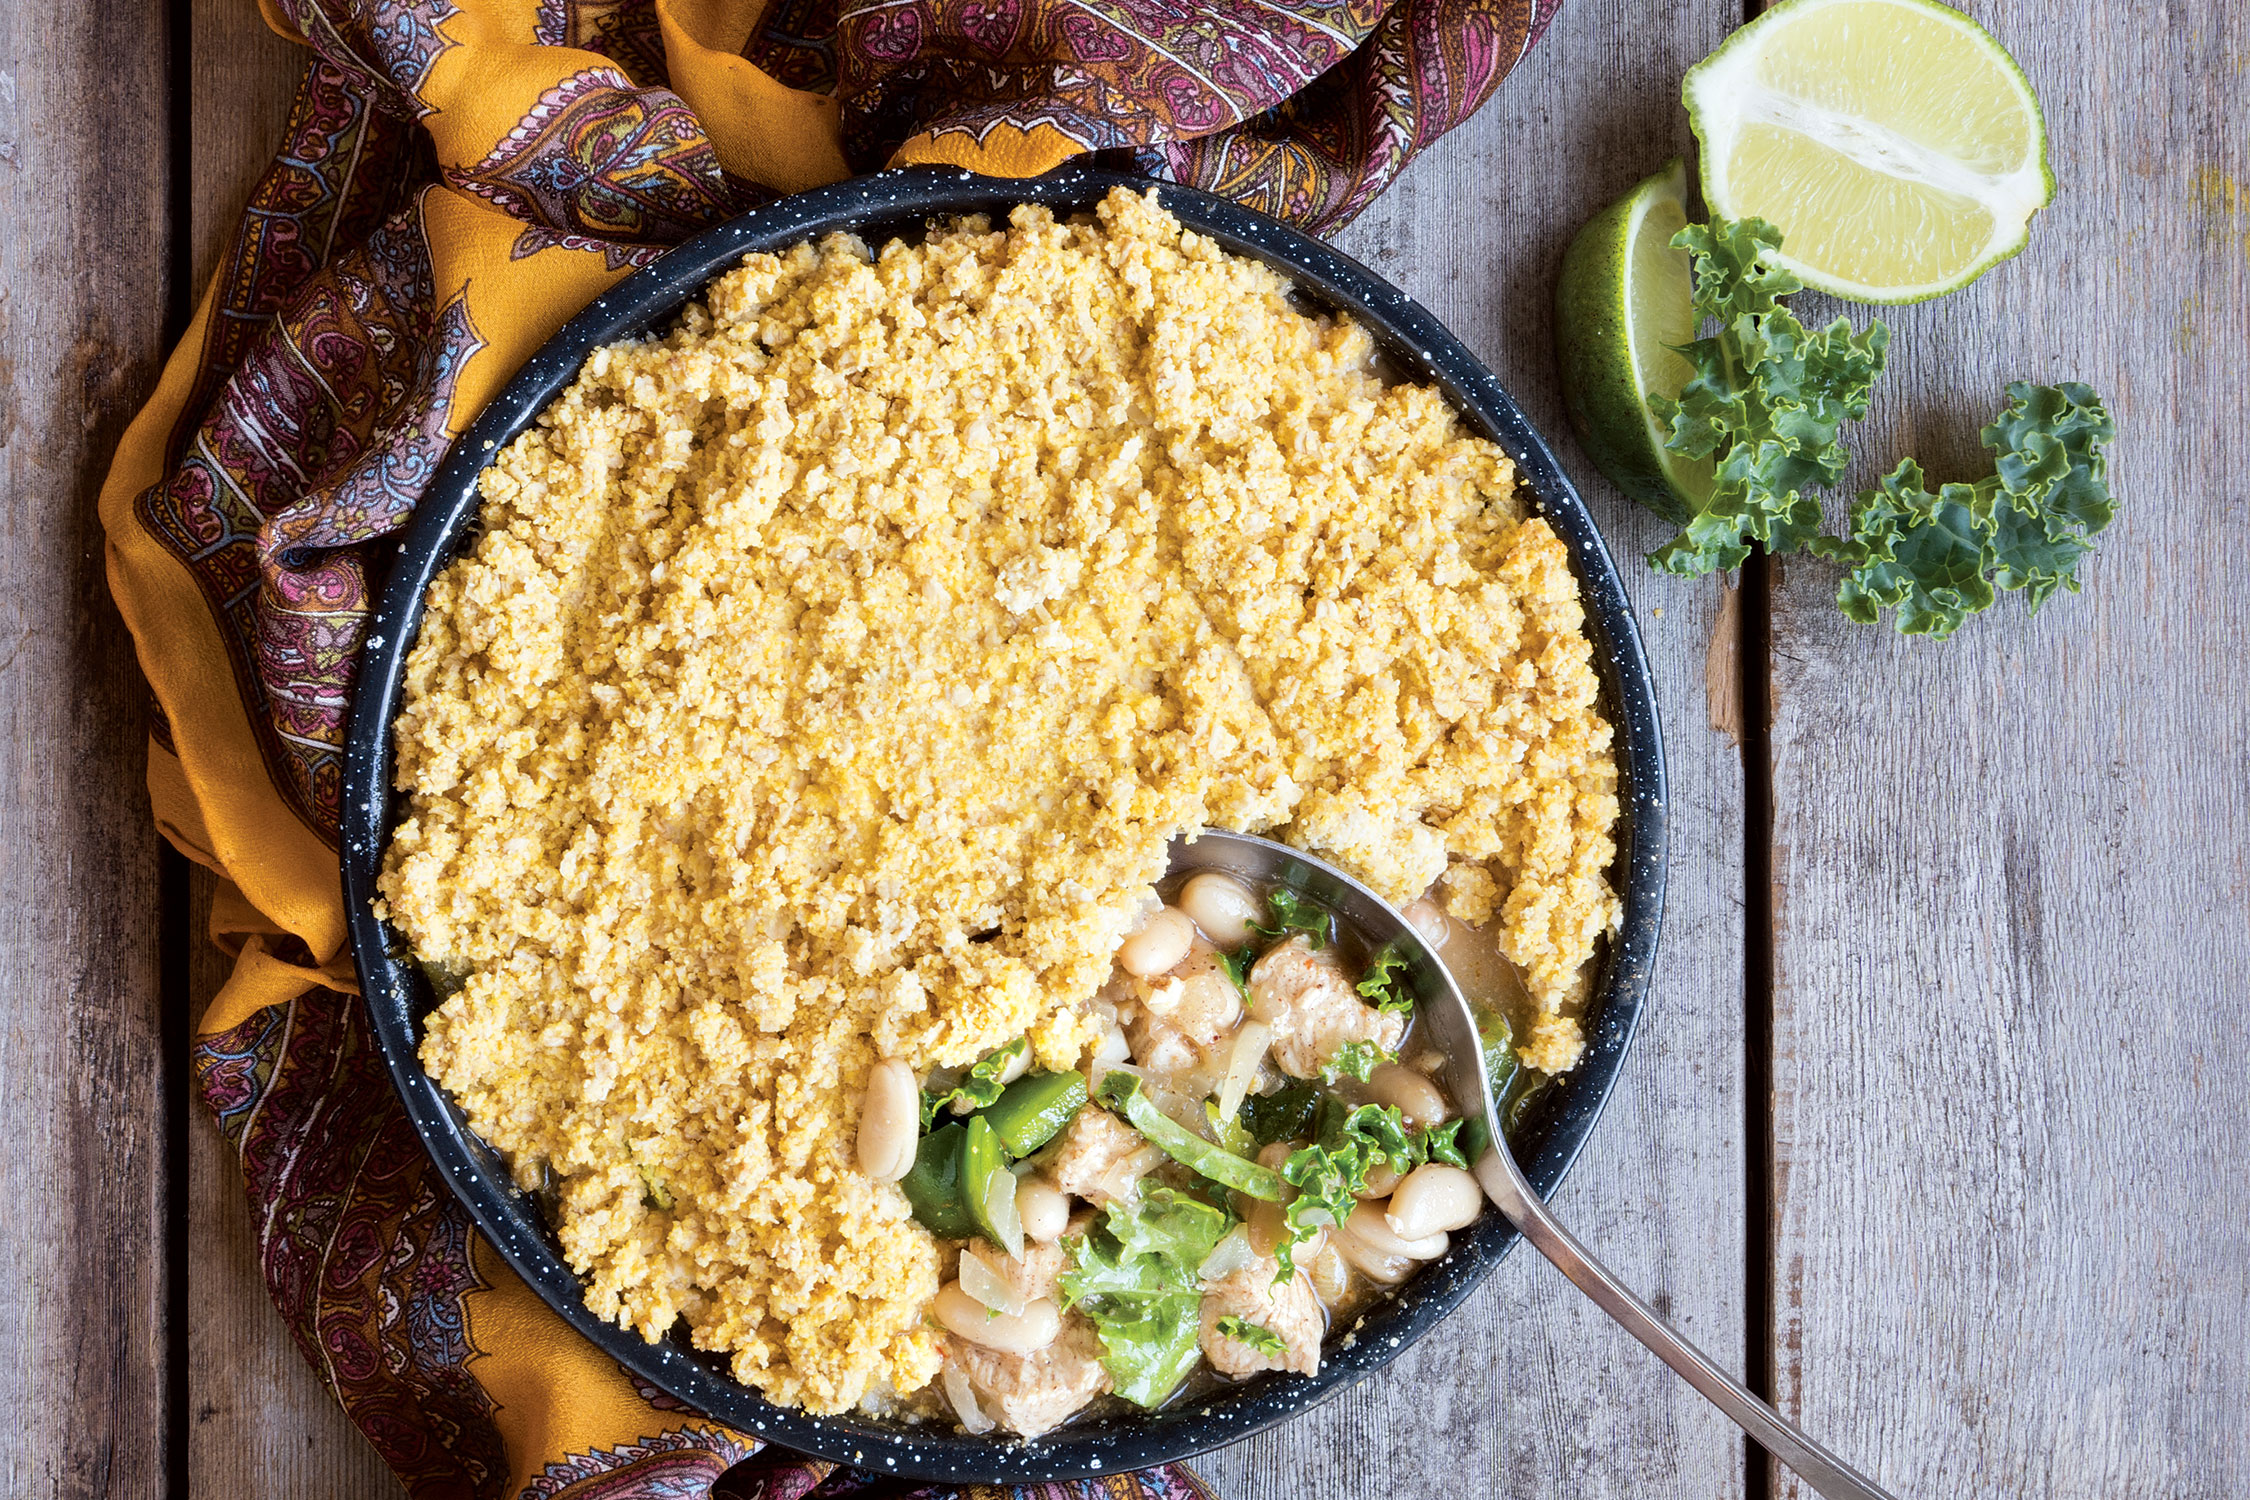 White Bean and Turkey Chili with Cornbread Crumble